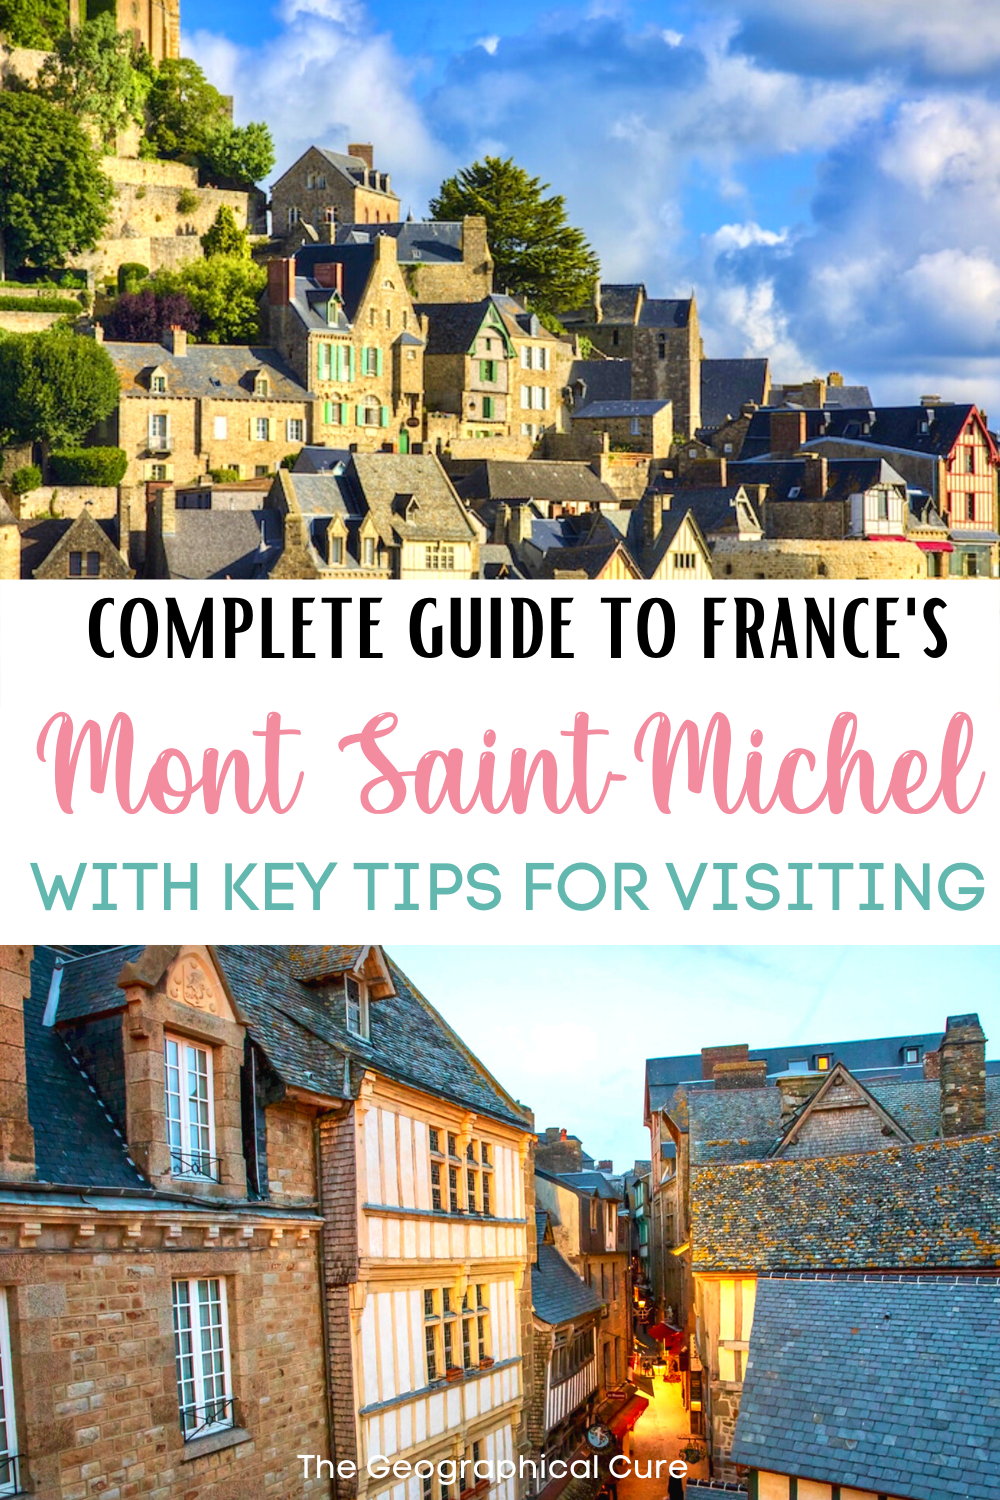 guide to Mont Saint-Michel, a famous landmark in Normandy